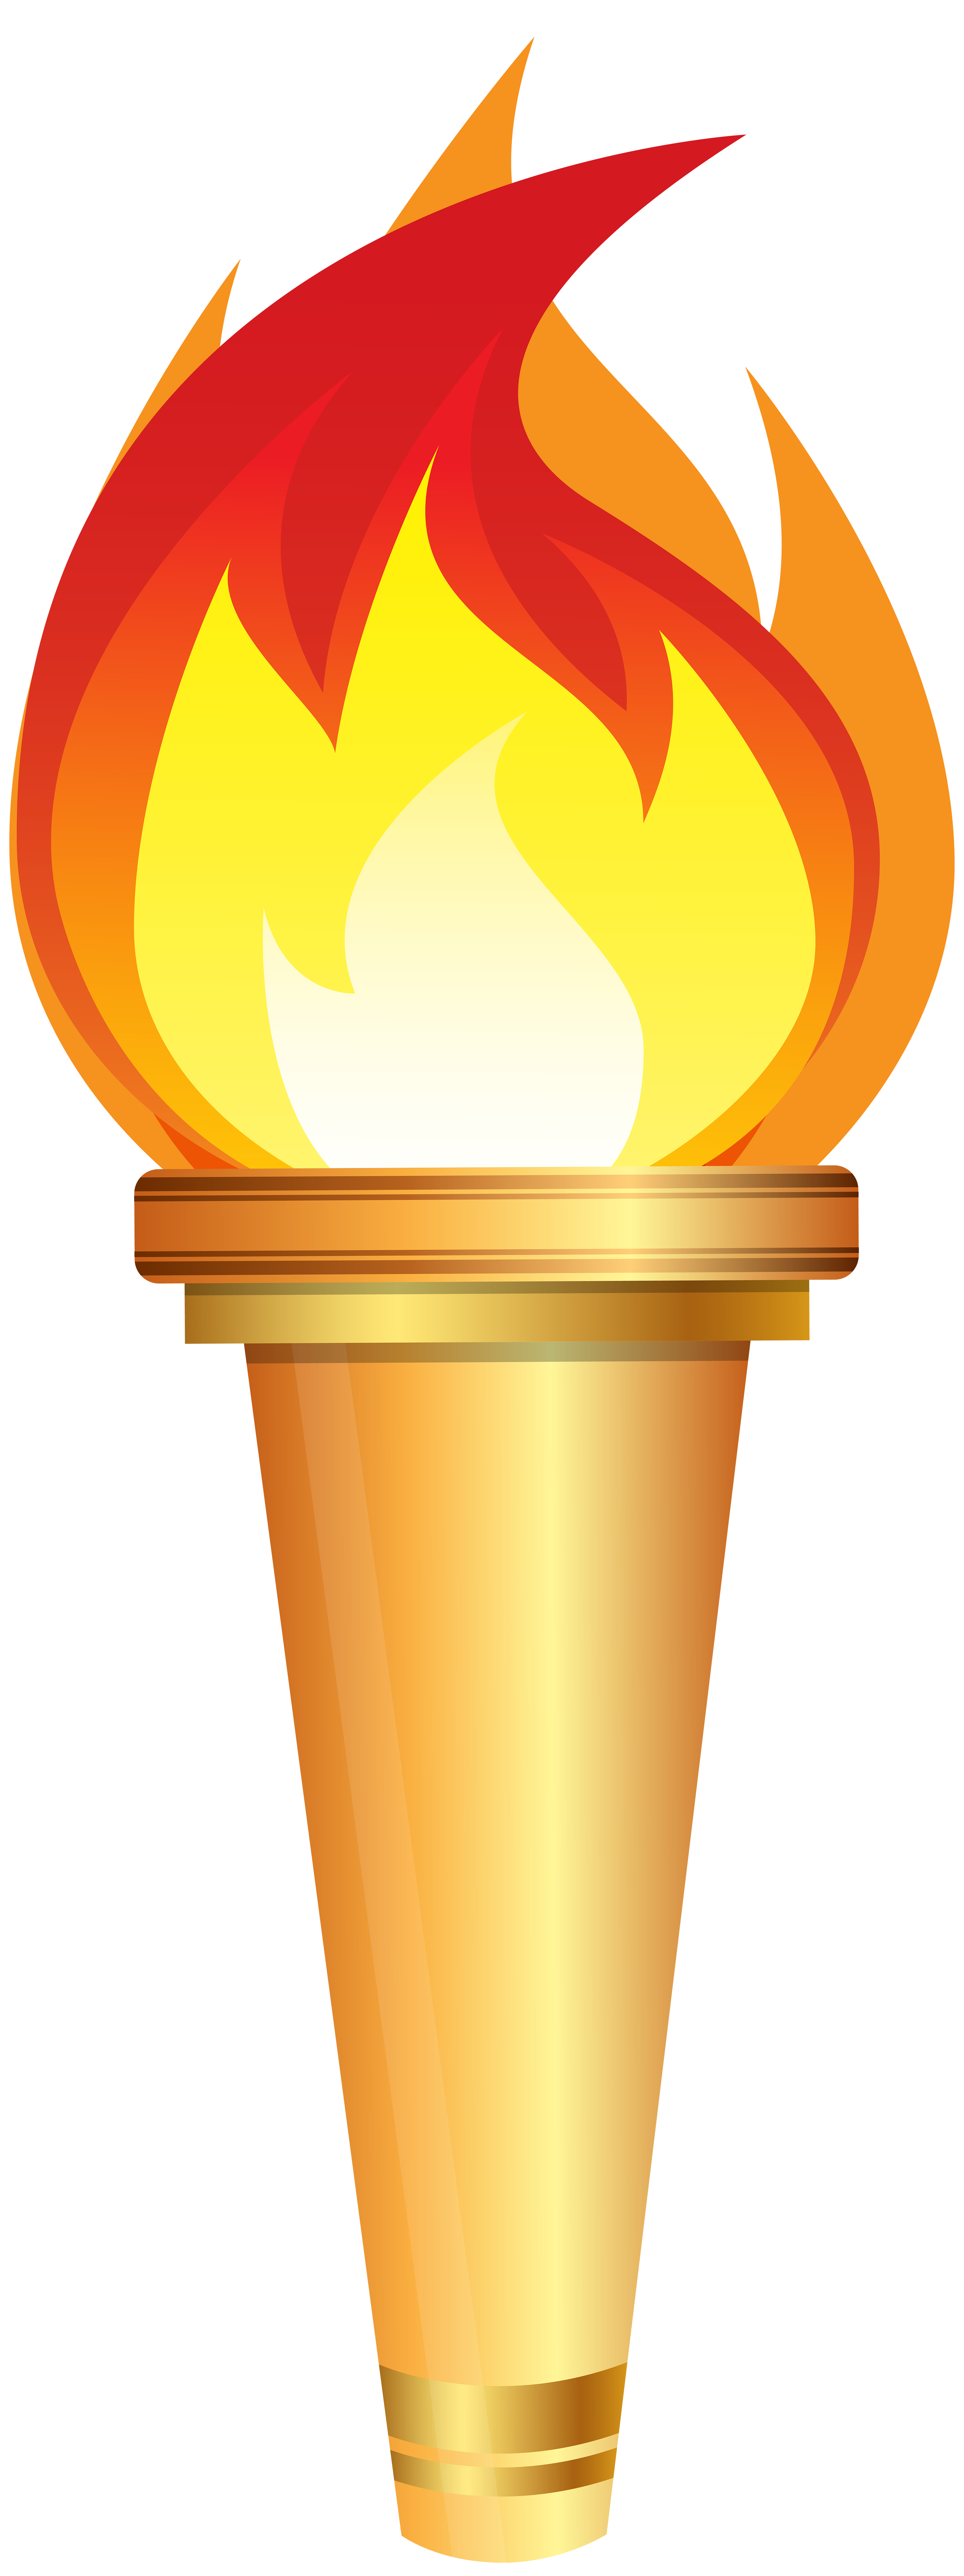 2995x8000 Olympic Torch Png Clip Art Imageu200b Gallery Yopriceville